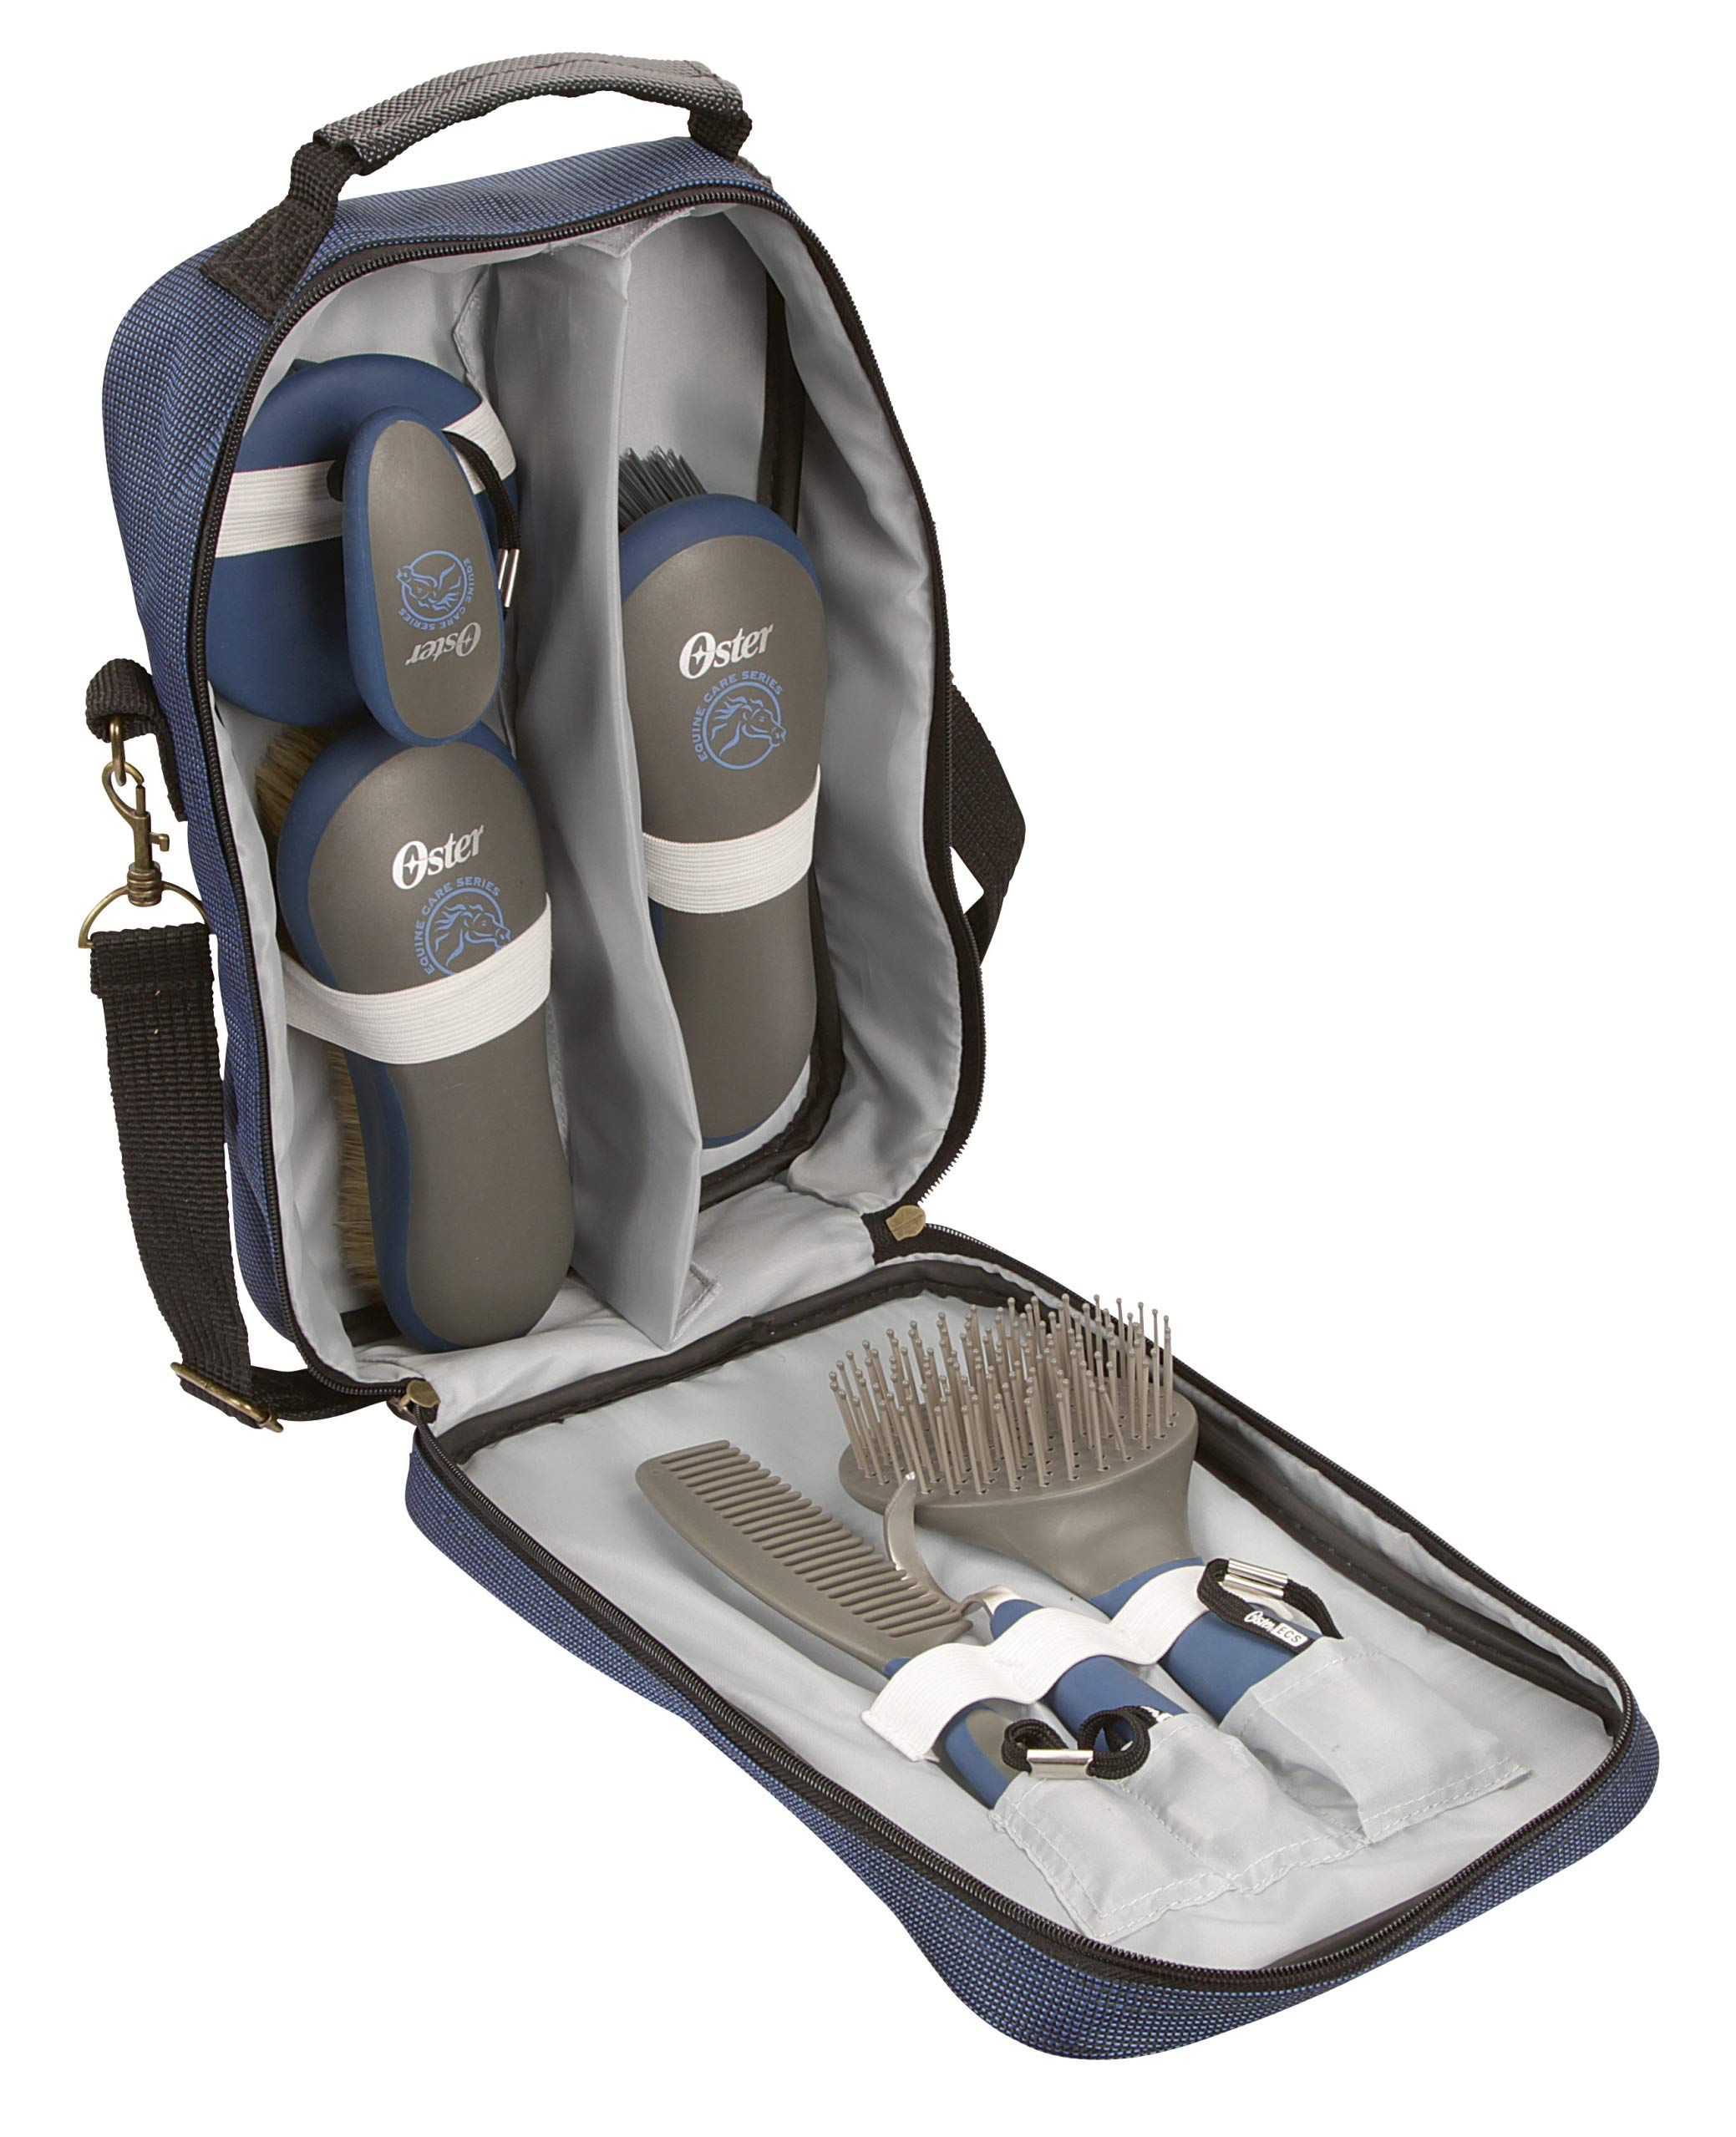 Oster Equine Care Series 7-Piece Horse Grooming Kit by Oster